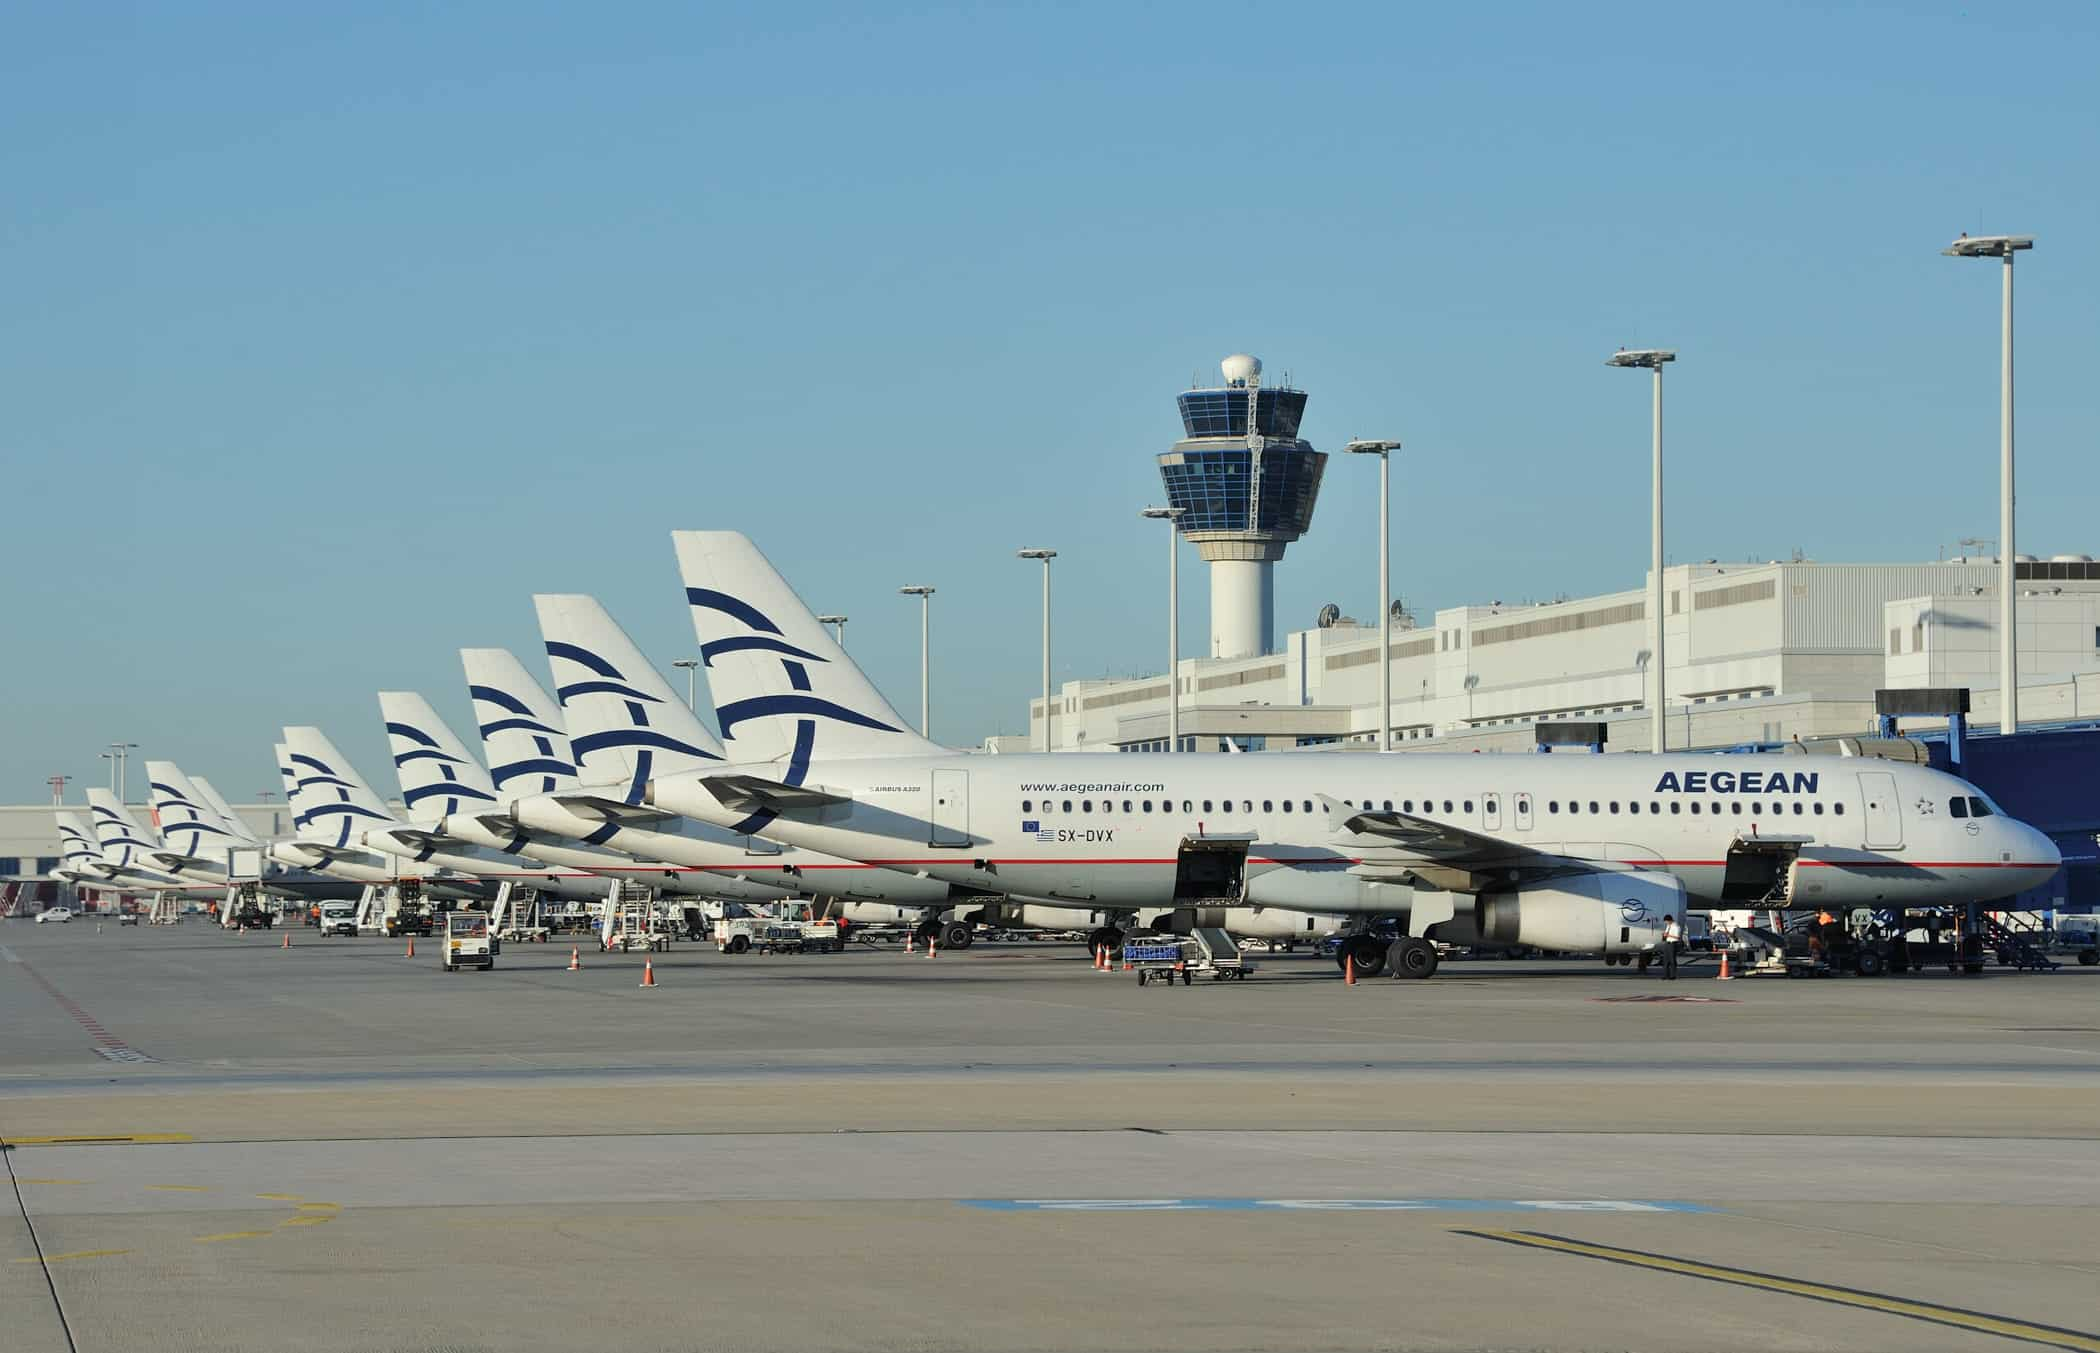 aegean airlines airport athens airport greece